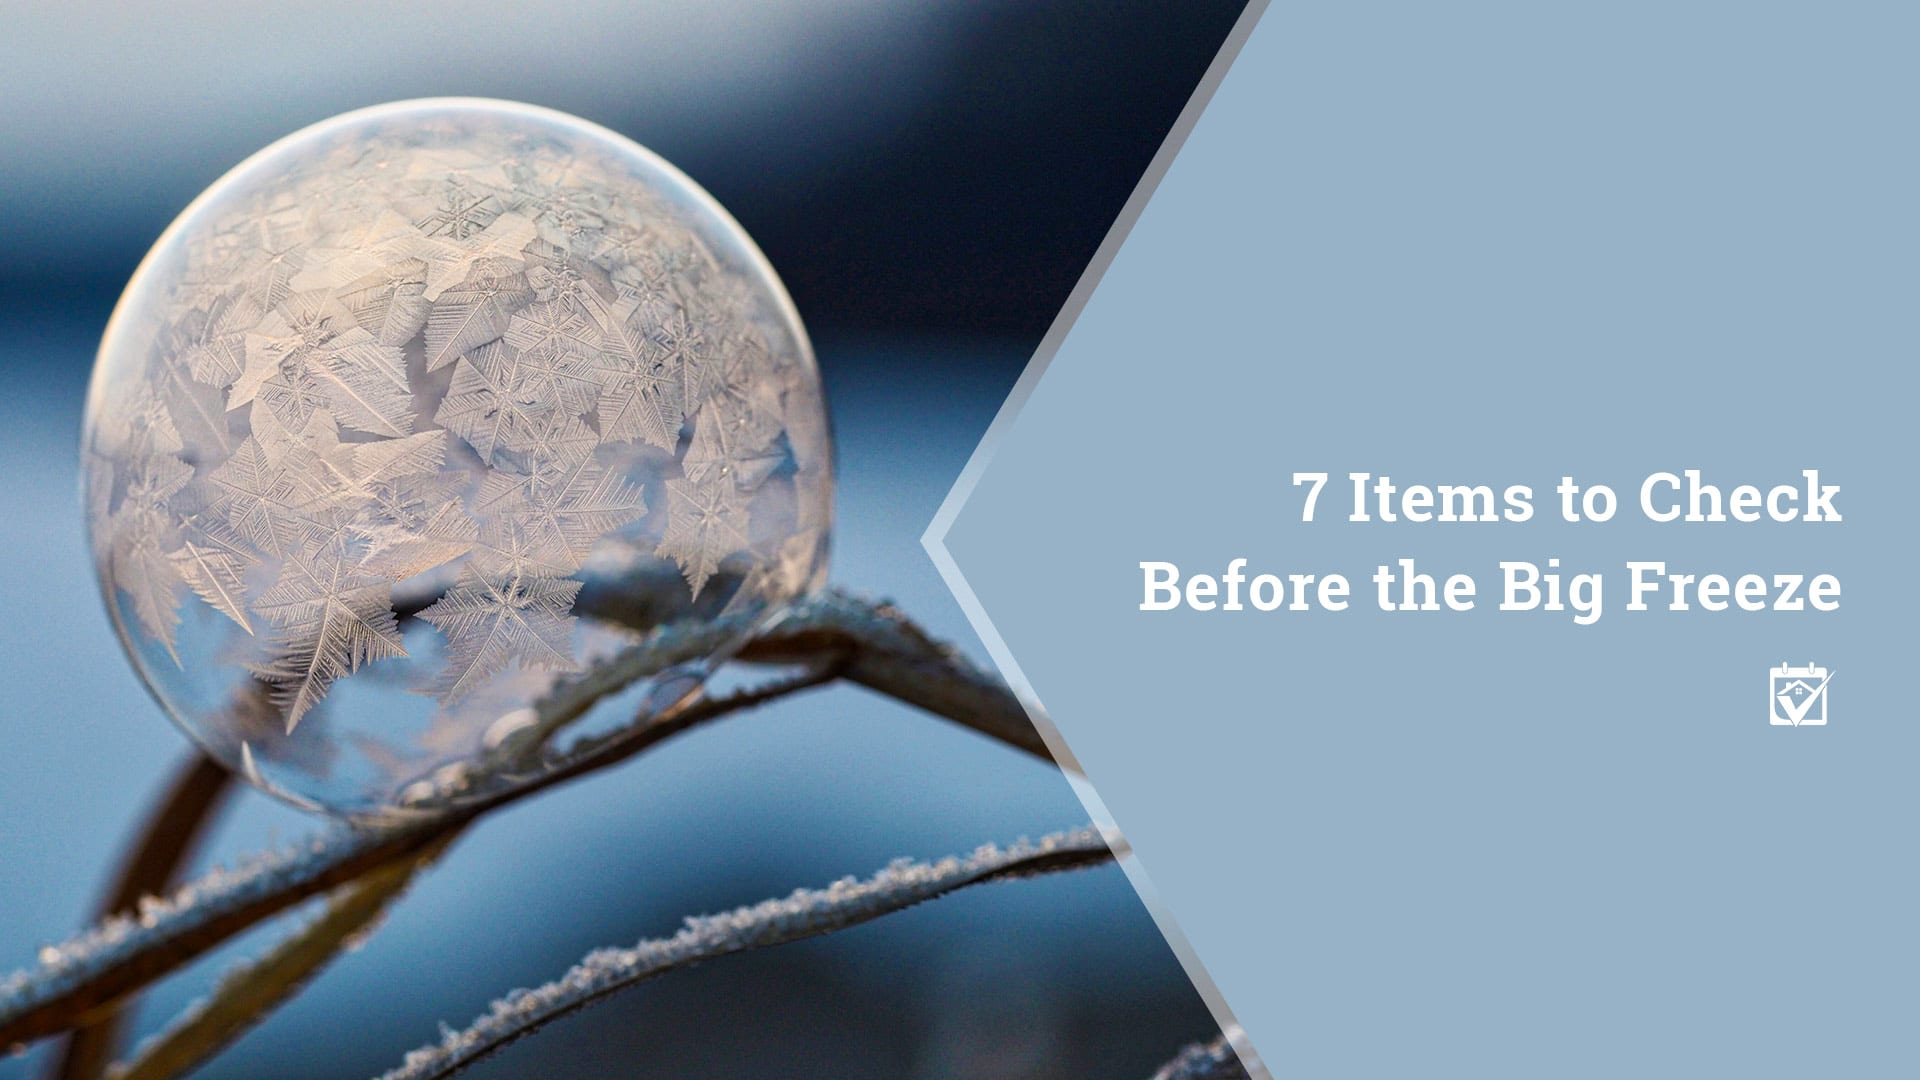 7 Items to Check Before The Big Freeze - The LeeAnn Kampfer Team